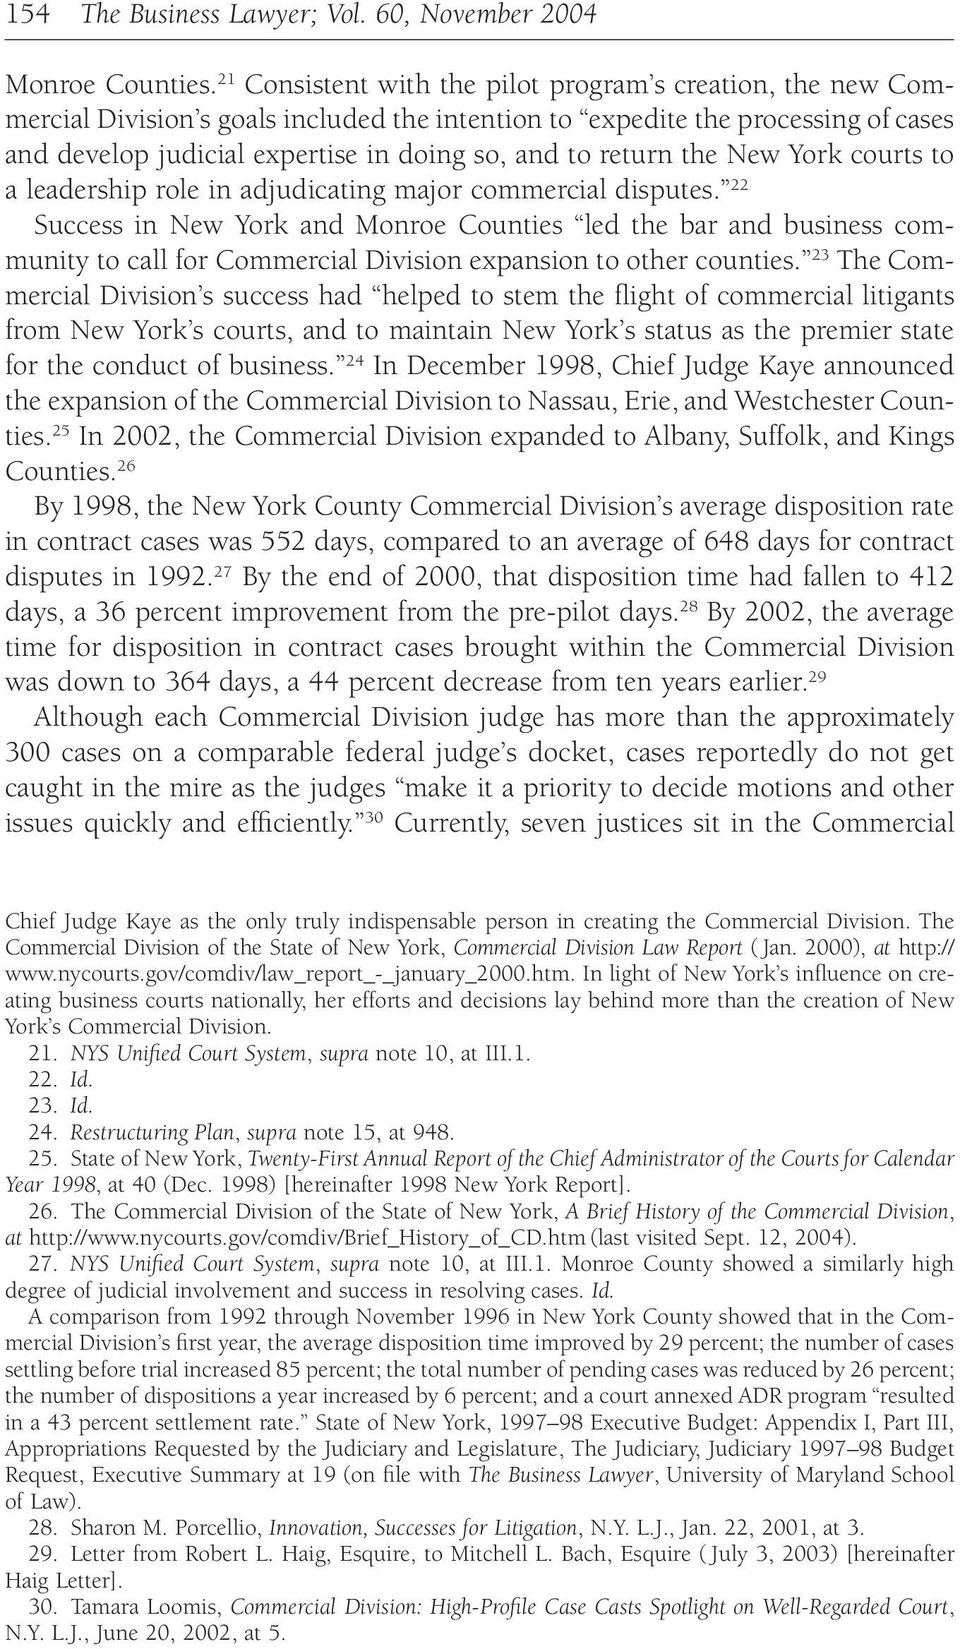 return the New York courts to a leadership role in adjudicating major commercial disputes.